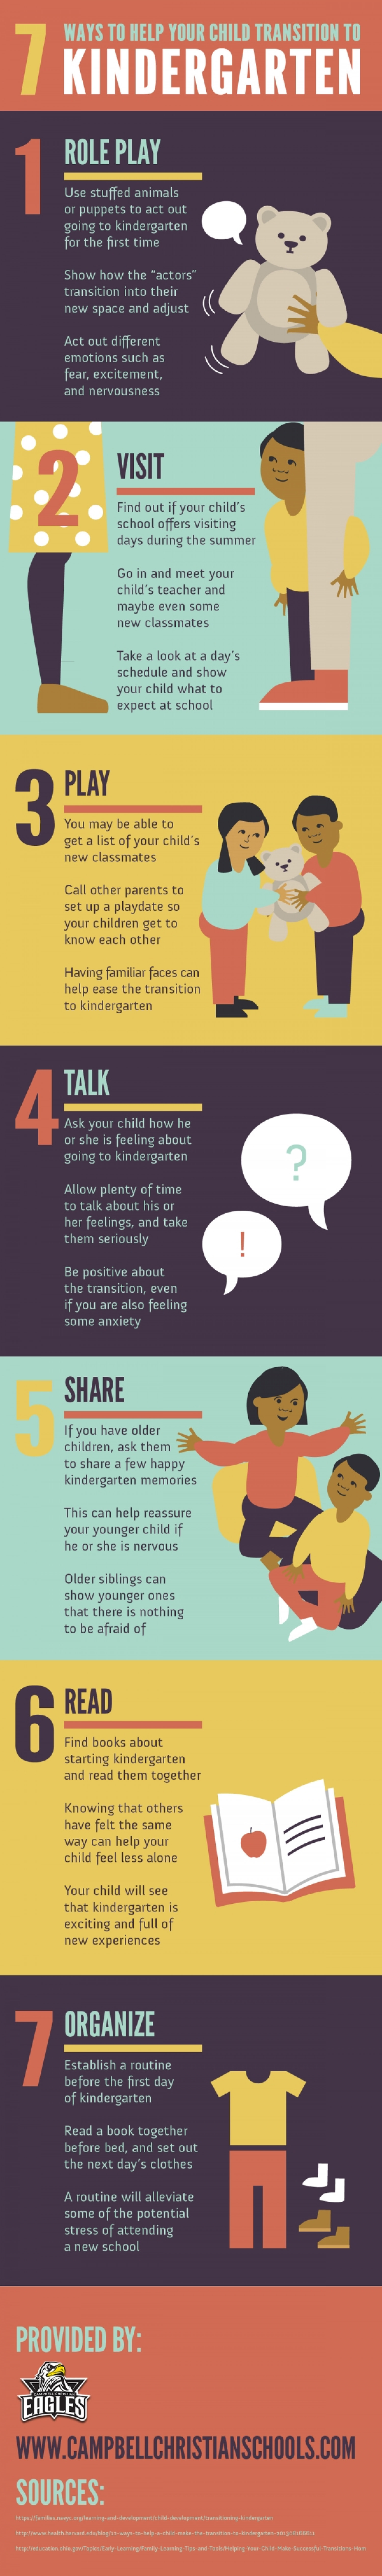 7 Ways to Help Your Child Transition to Kindergarten  Infographic